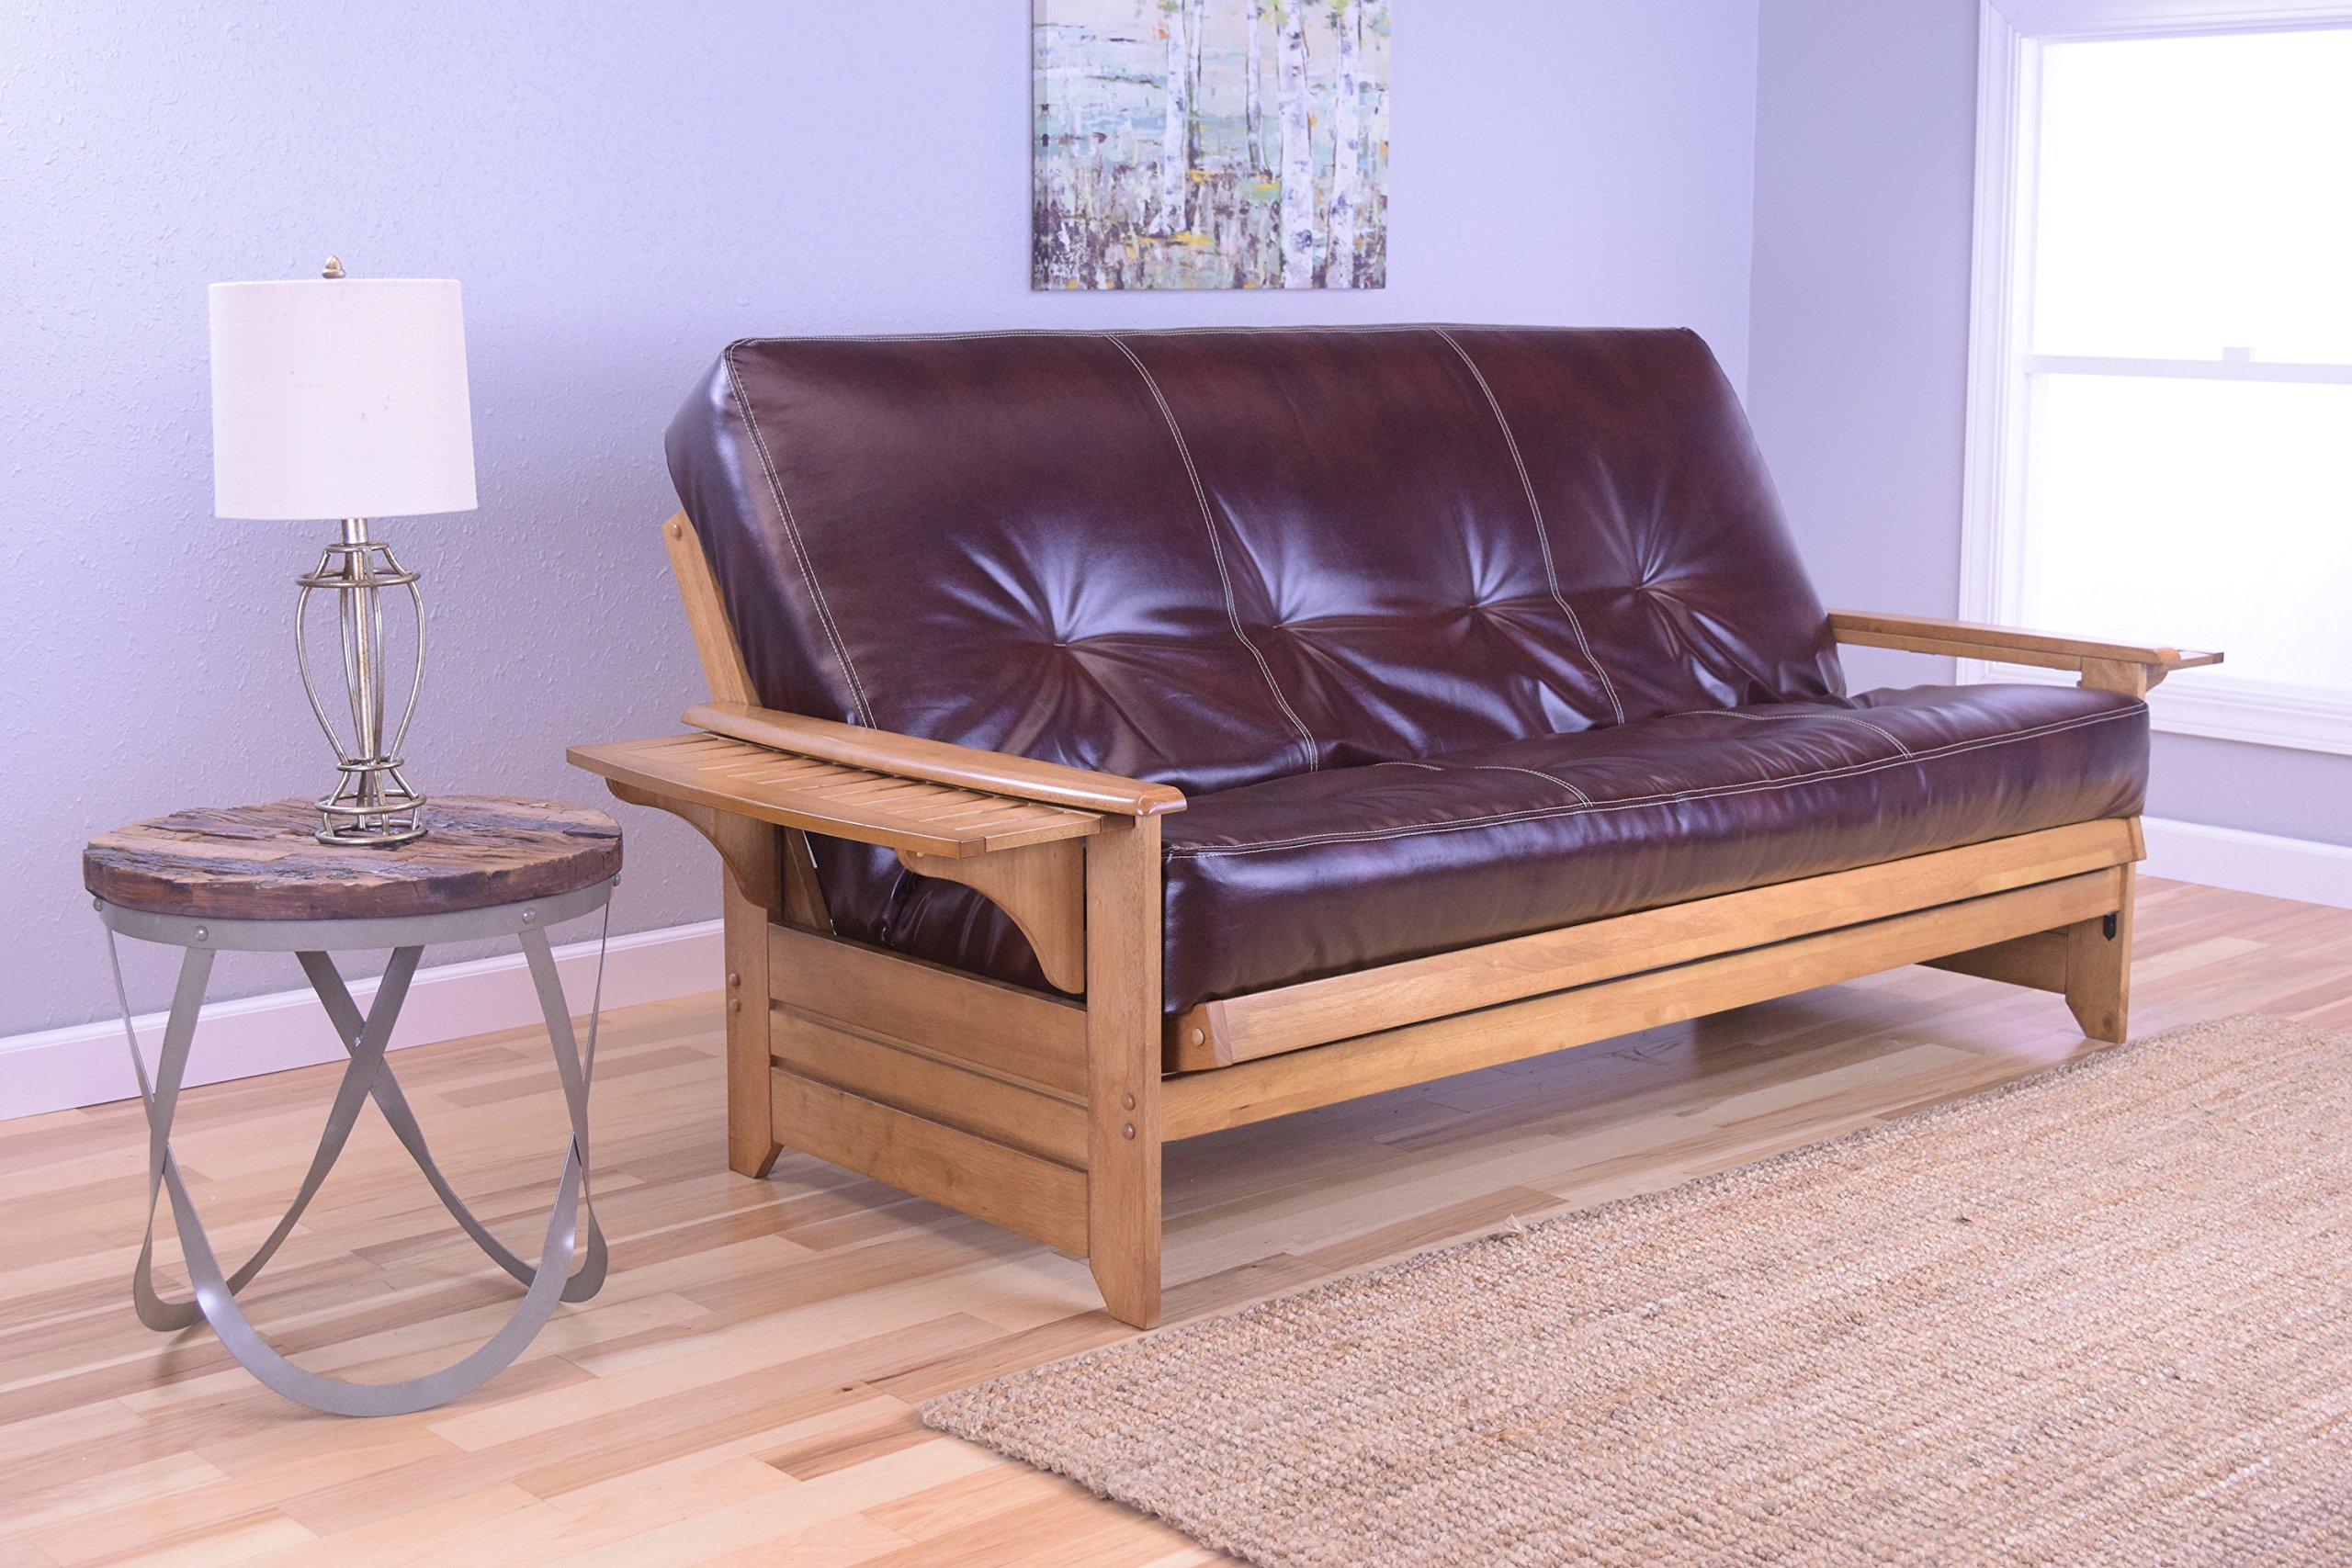 Rosemount Full Size Futon, Honey Oak Wood with Bonded Leather Innerspring Mattress, Java by Michael Anthony Furniture